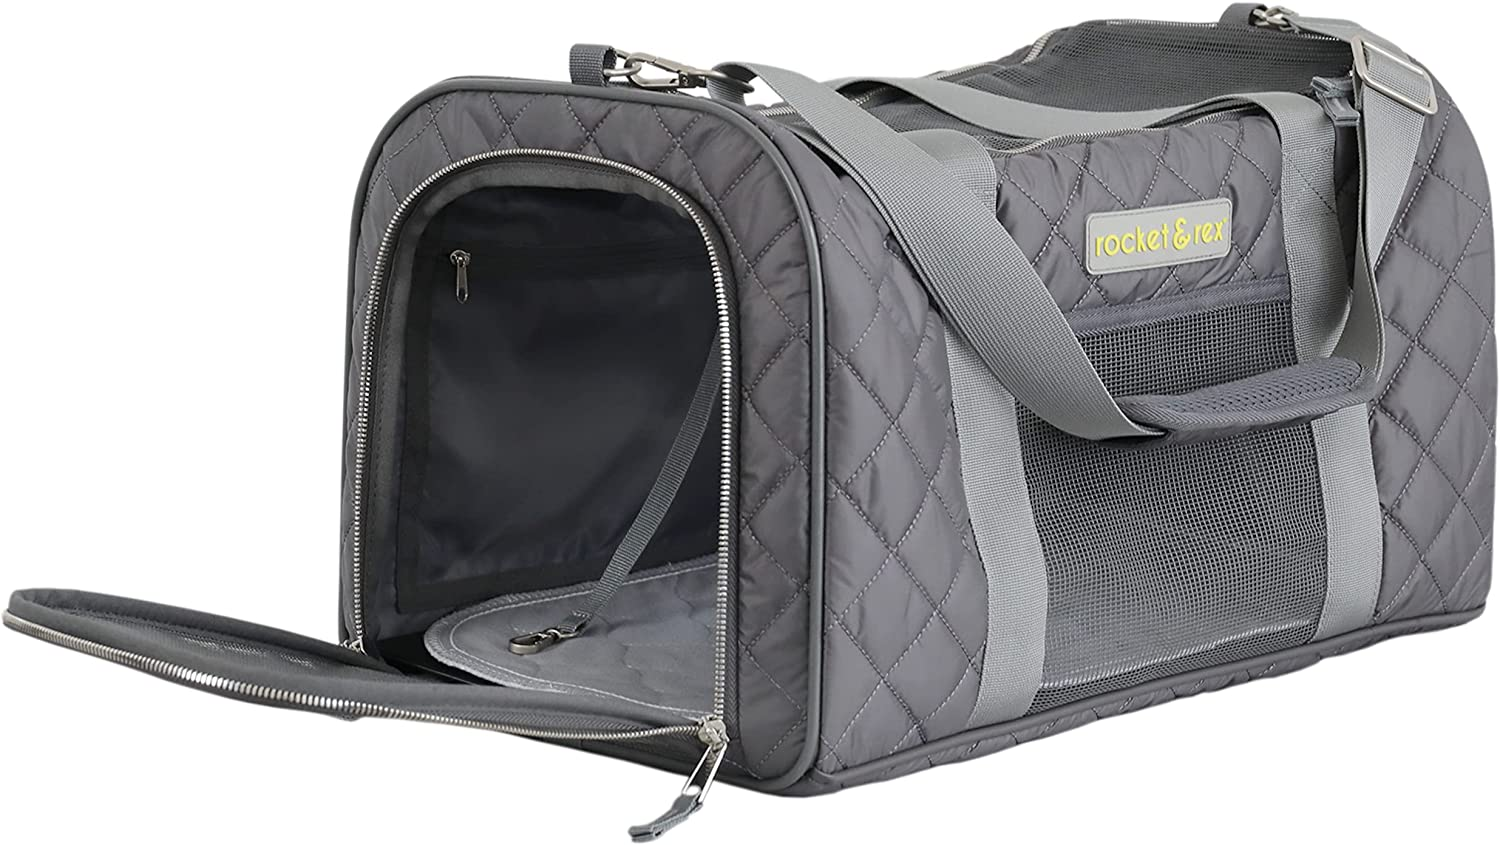 rocket rex Dog Carrier Airline Soft-Sided Carrie Approved. Ranking TOP12 Cheap sale Cat